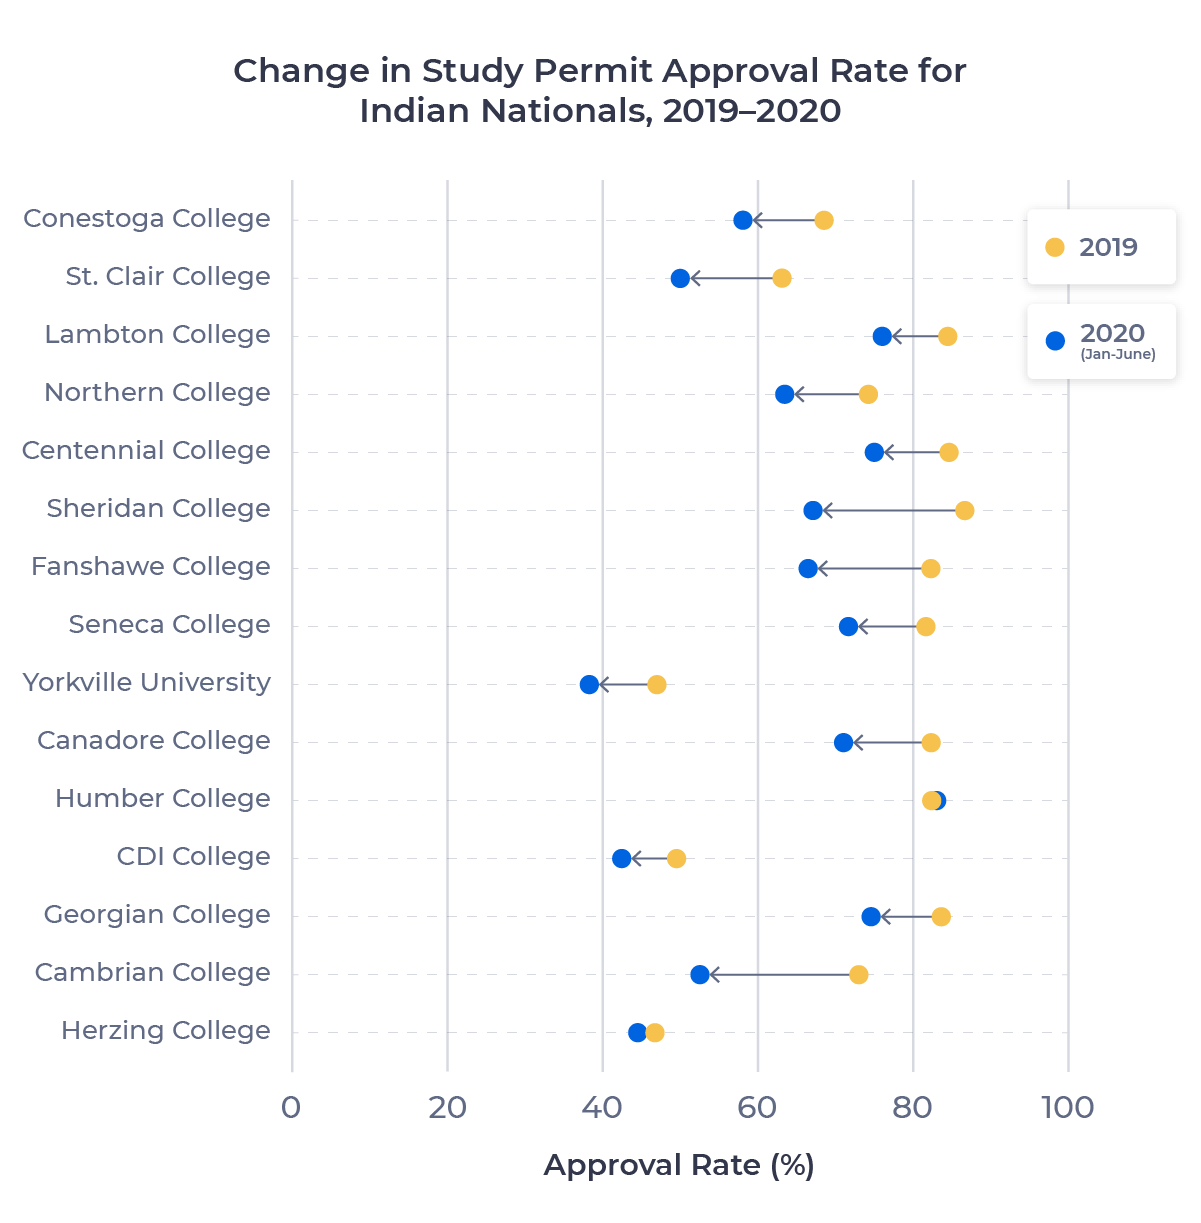 Dot plot showing the change in study permit approval rate for the top 15 post-secondary schools for Indian nationals from 2019 to 2020. Examined in detail below.